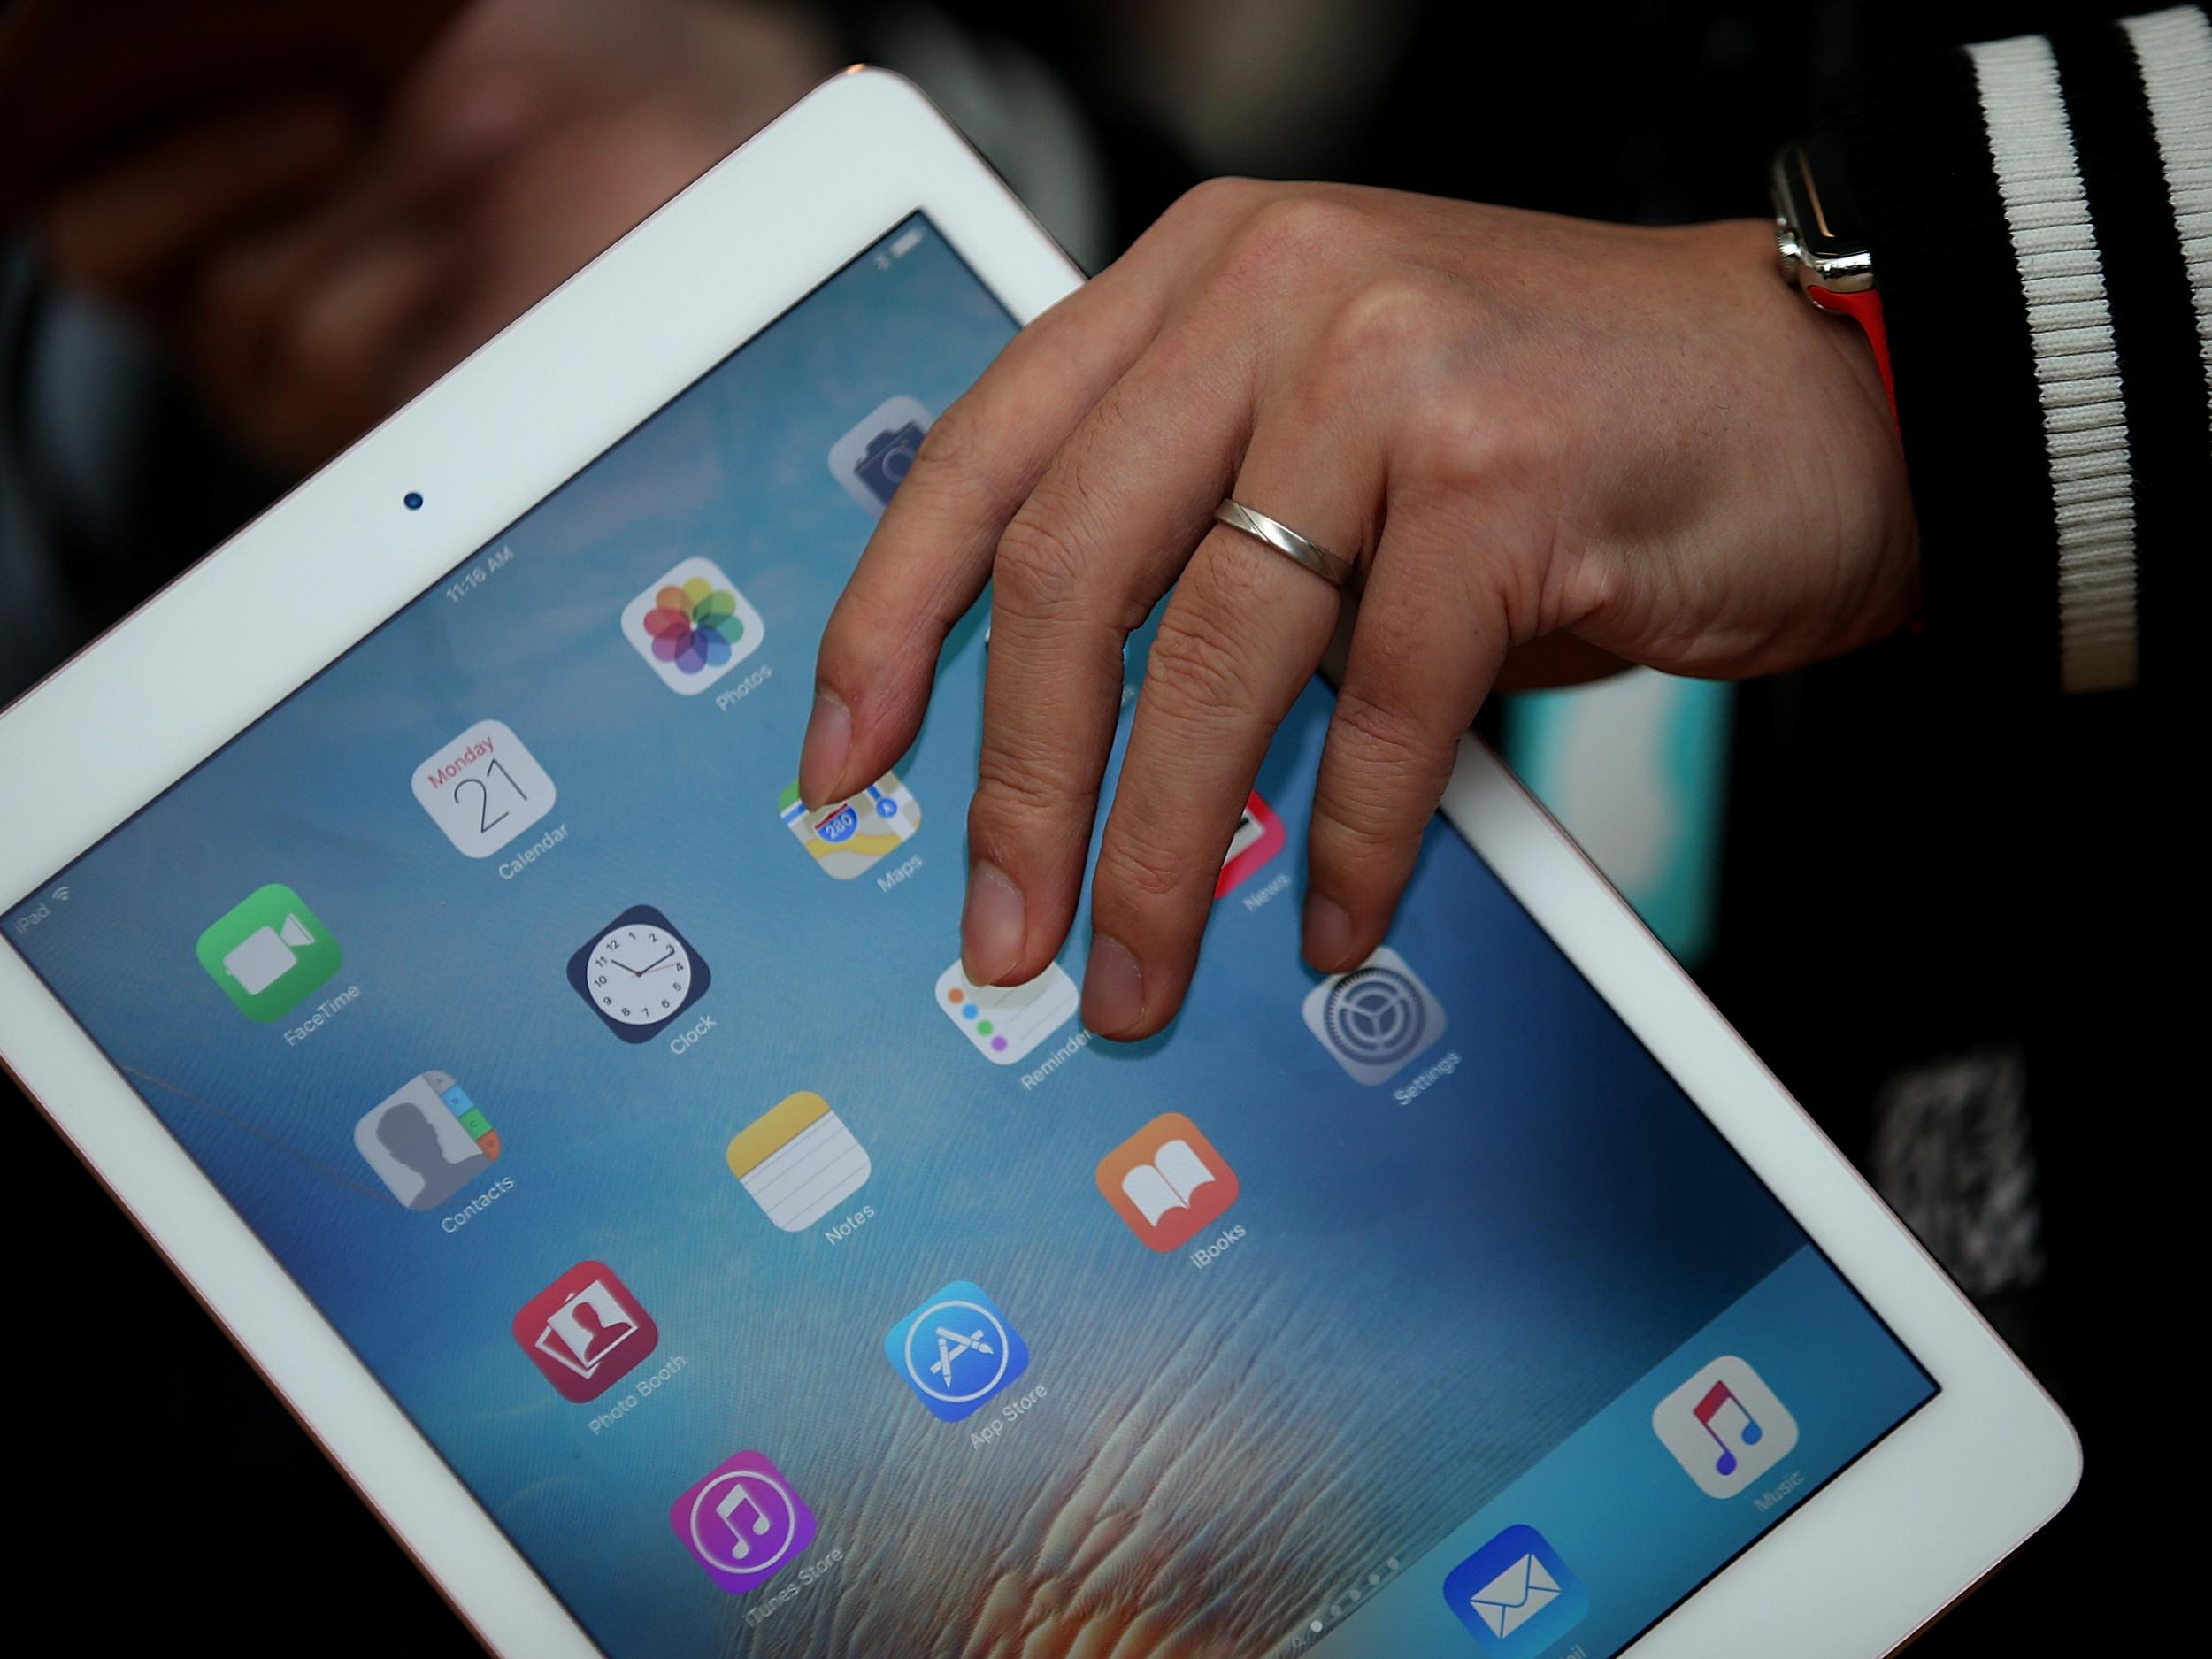 ipad 9.7 inch review